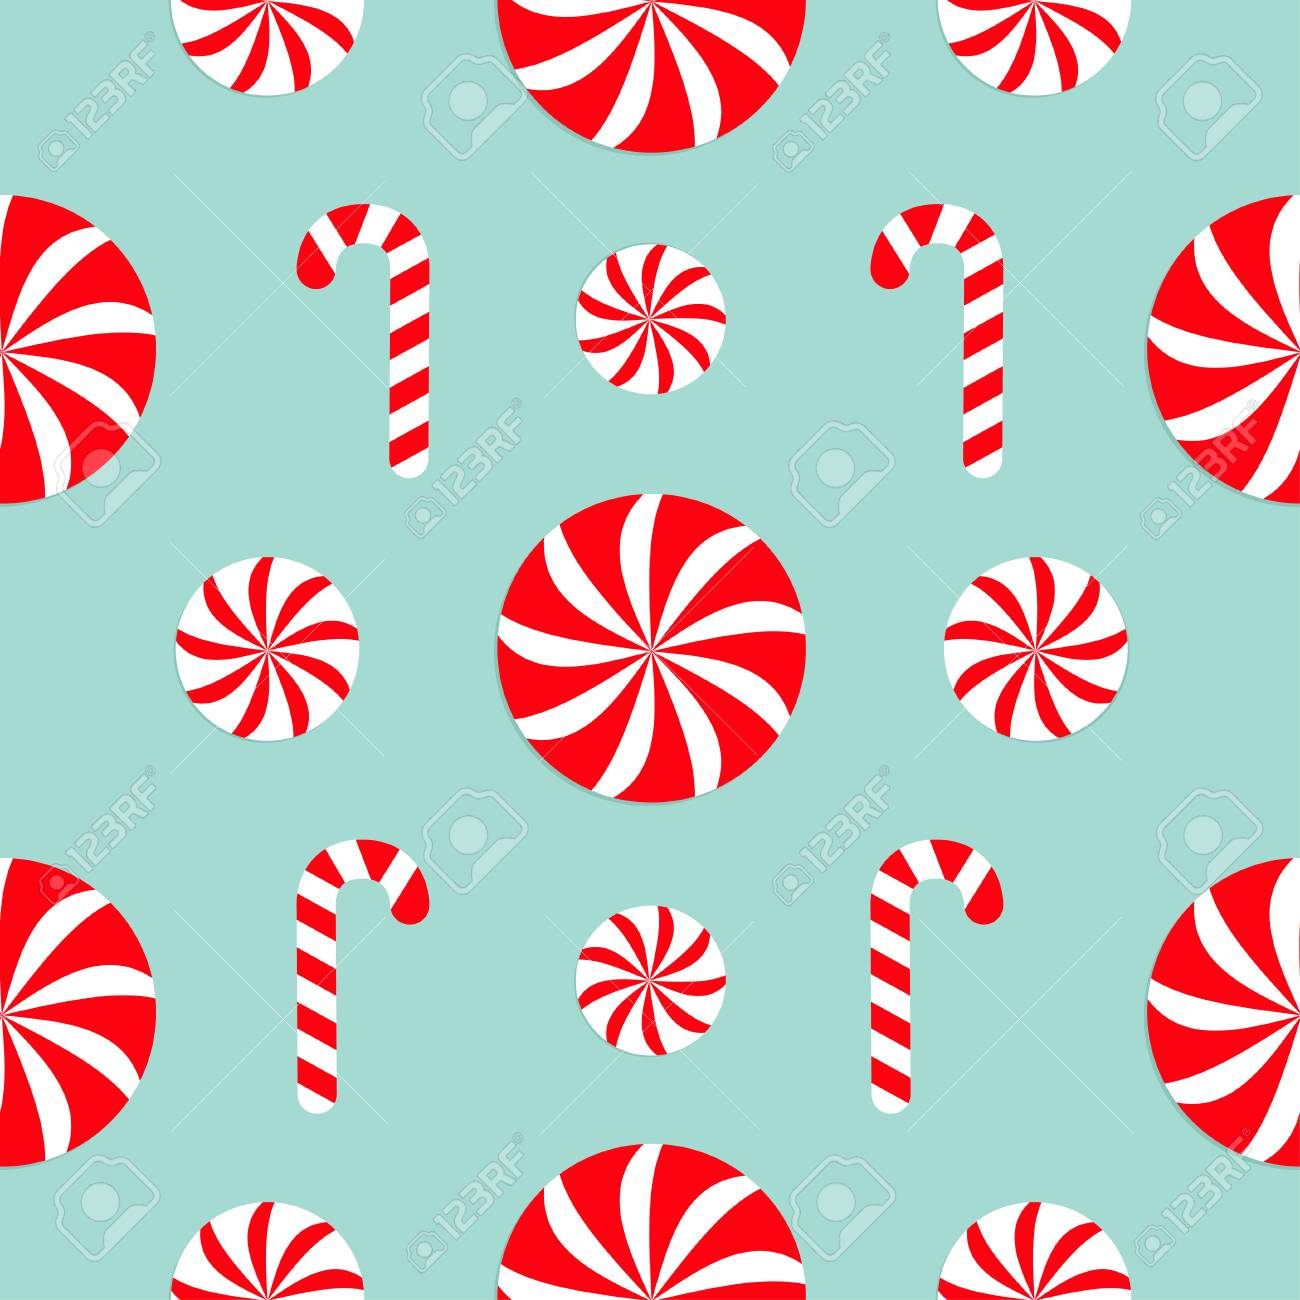 Christmas Candy Cane.Seamless Pattern Decoration Christmas Candy Cane Round White